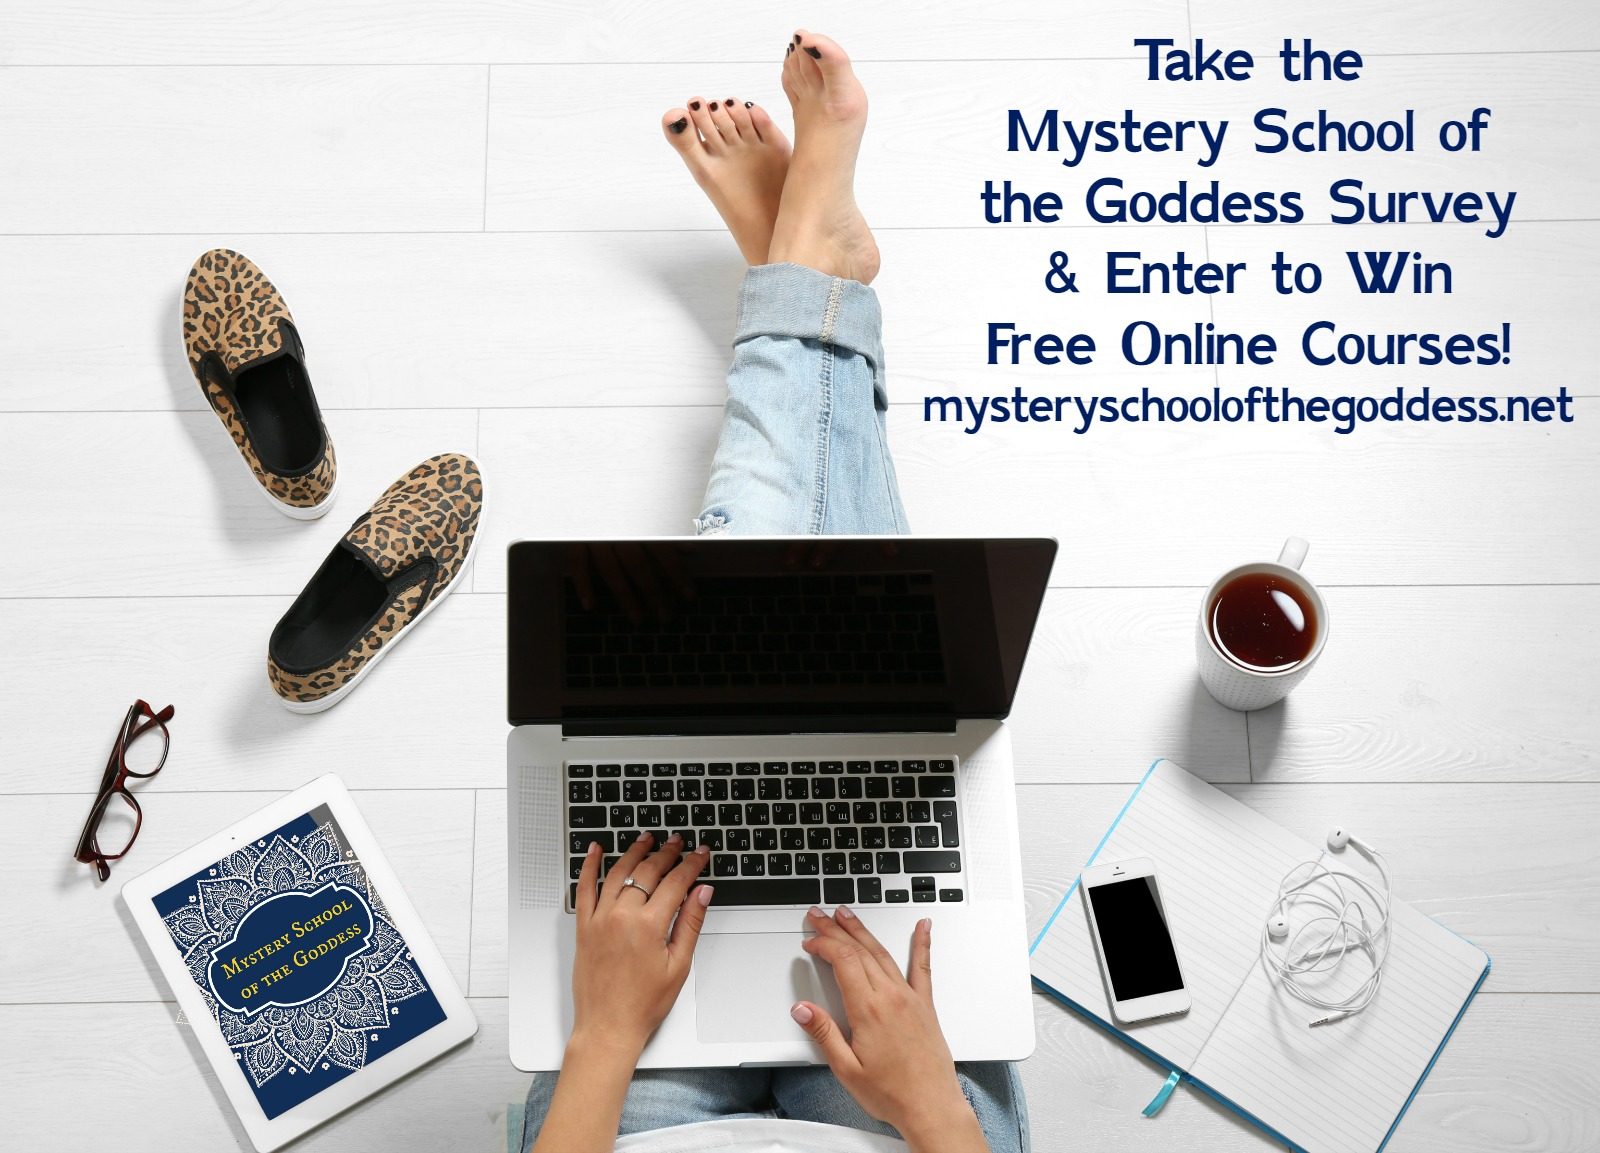 Mystery School of the Goddess Survey 2016